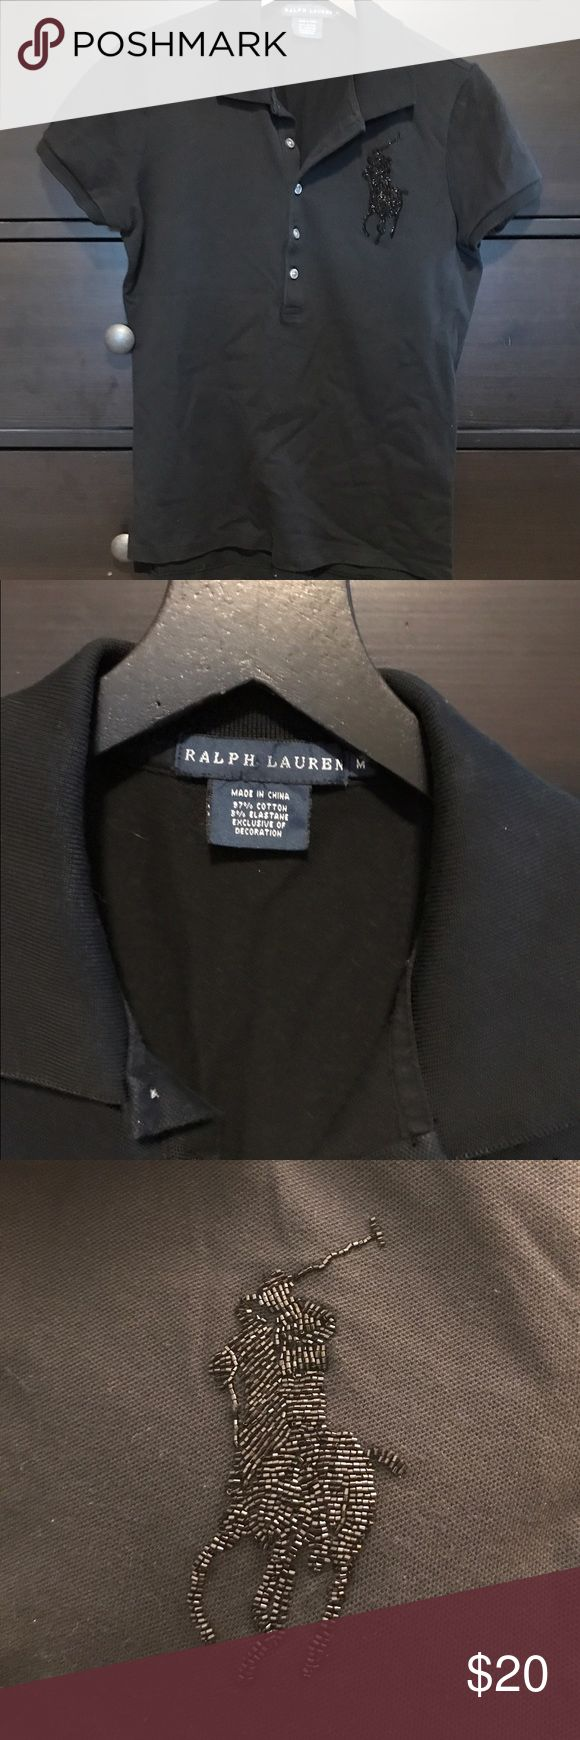 Ralph Lauren Black Polo Shirt RL black polo shirt with large beaded logo. Cute top. Size M. Excellent used condition. Ralph Lauren Tops